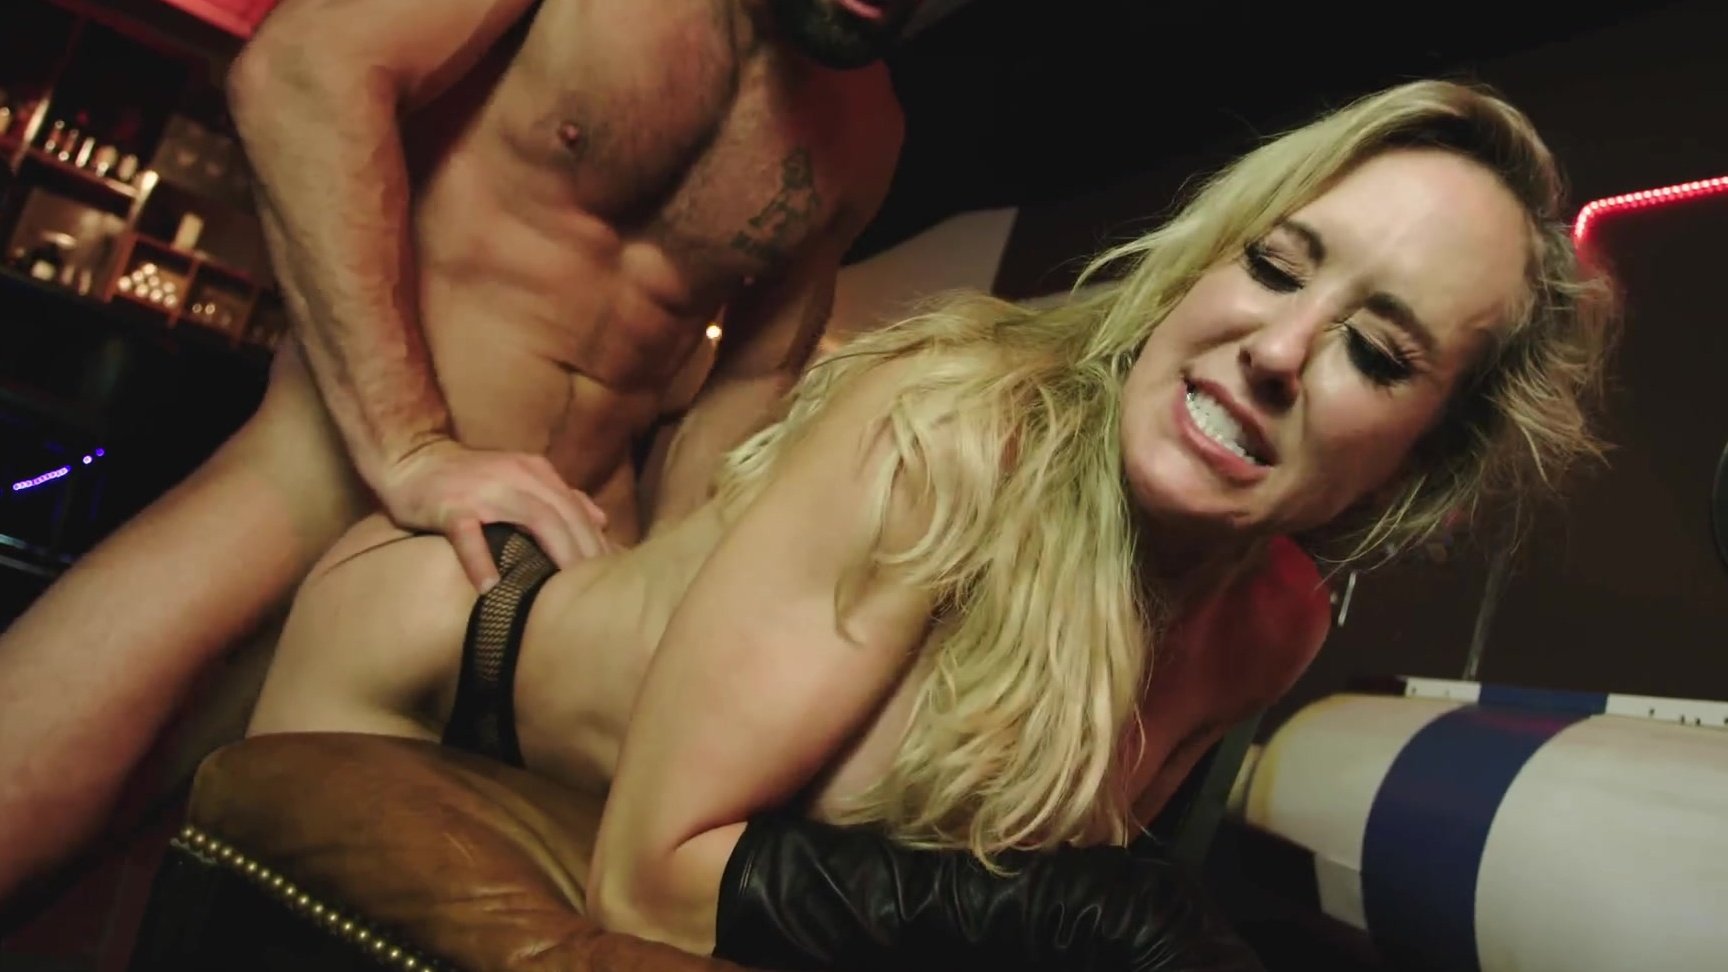 brandi love tied up